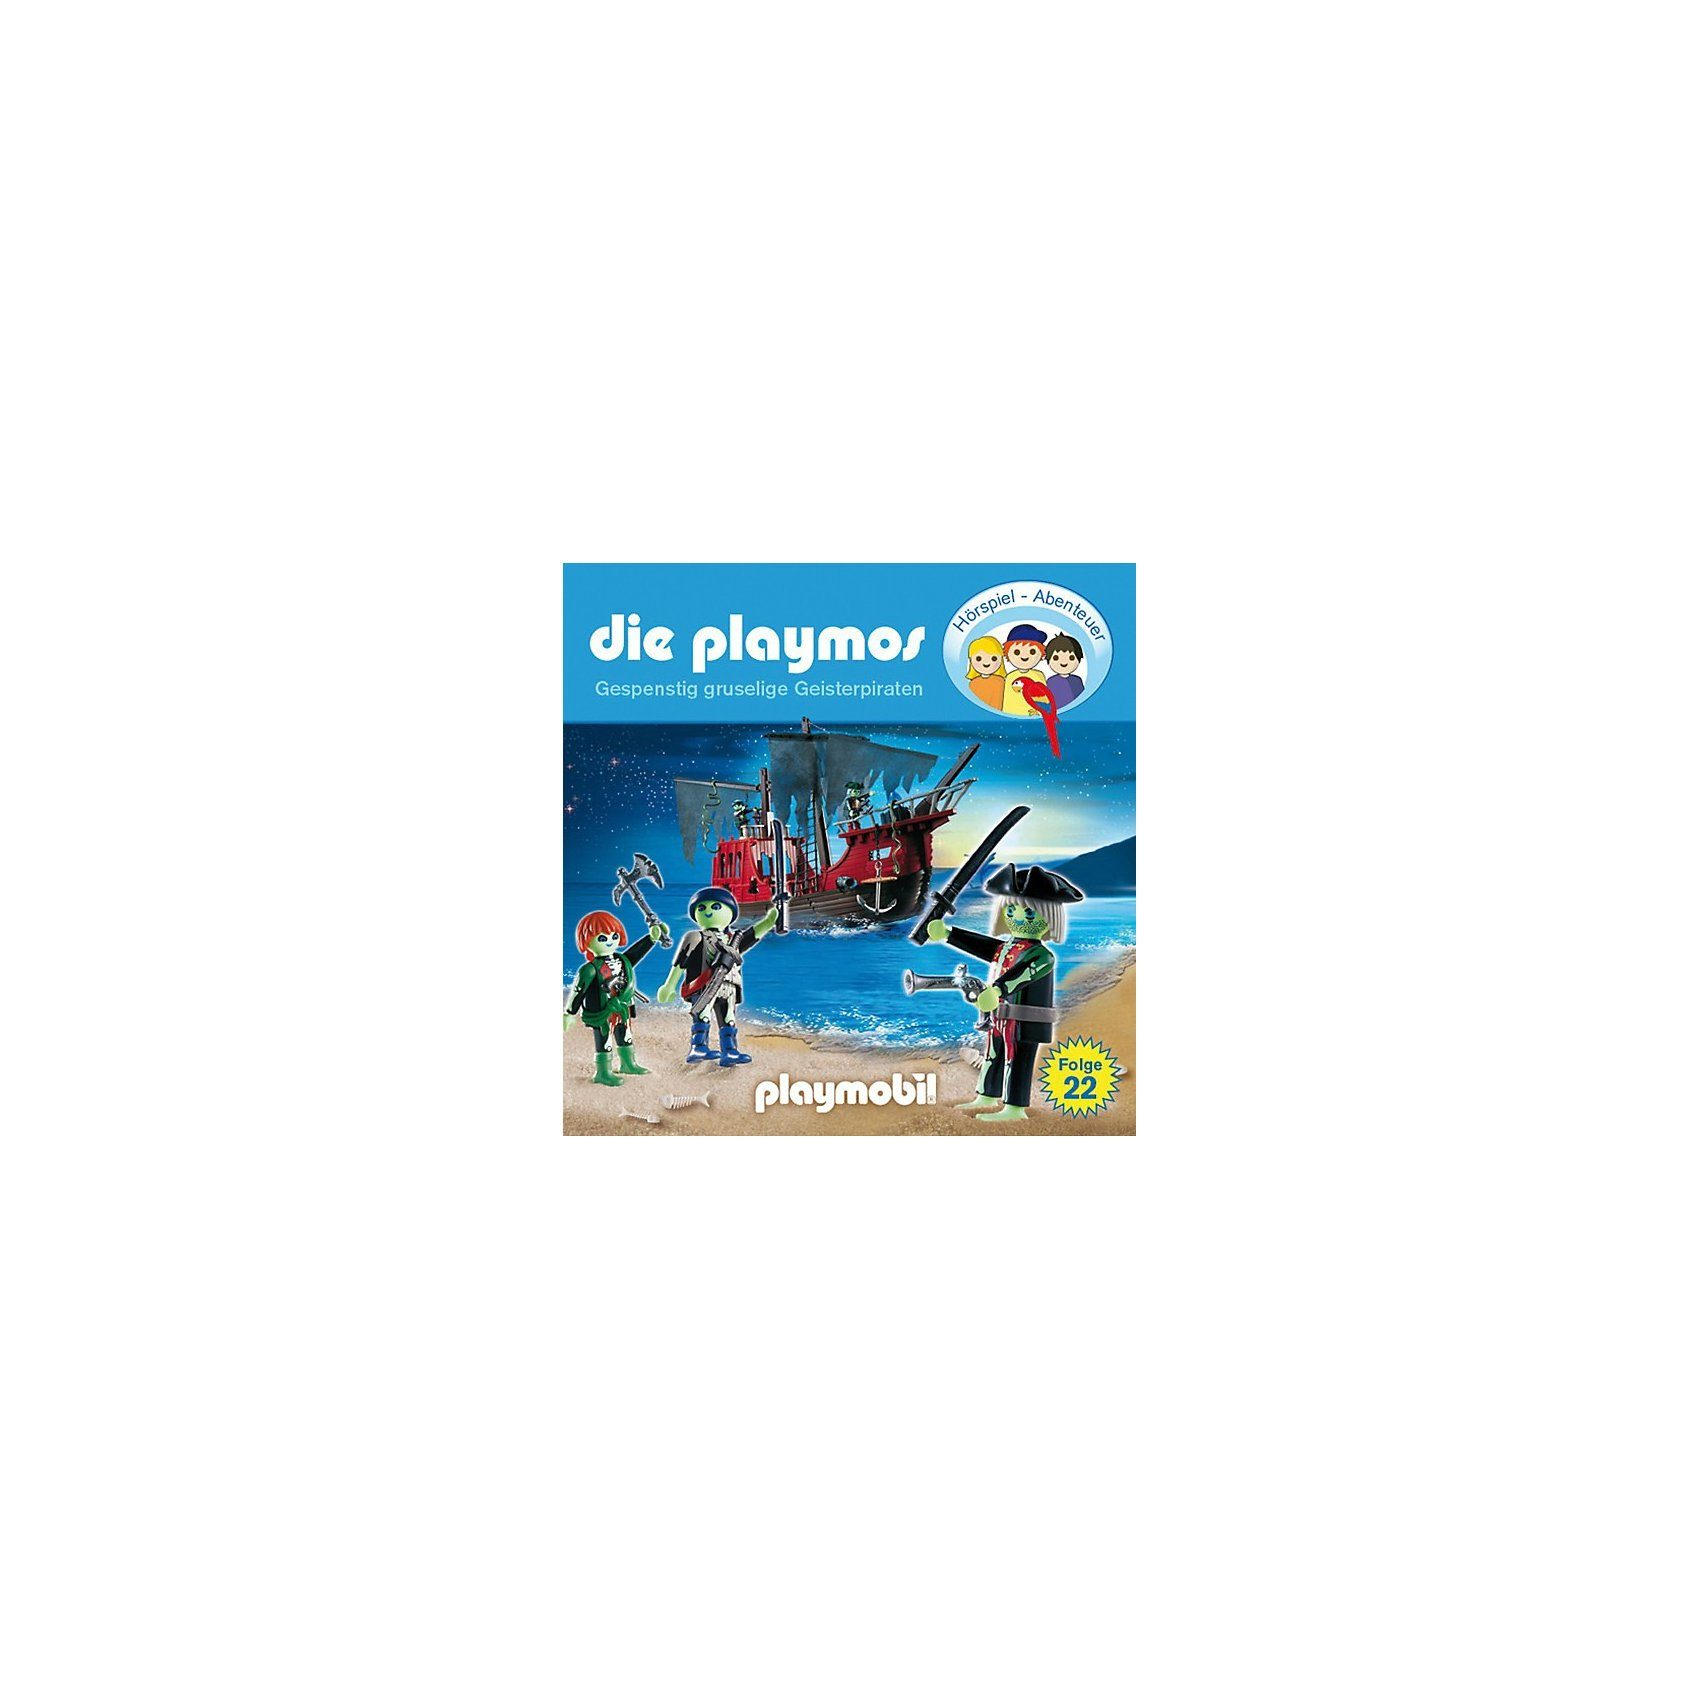 Edel Germany GmbH CD Die Playmos 22 - Gespenstig gruselige Geisterpiraten